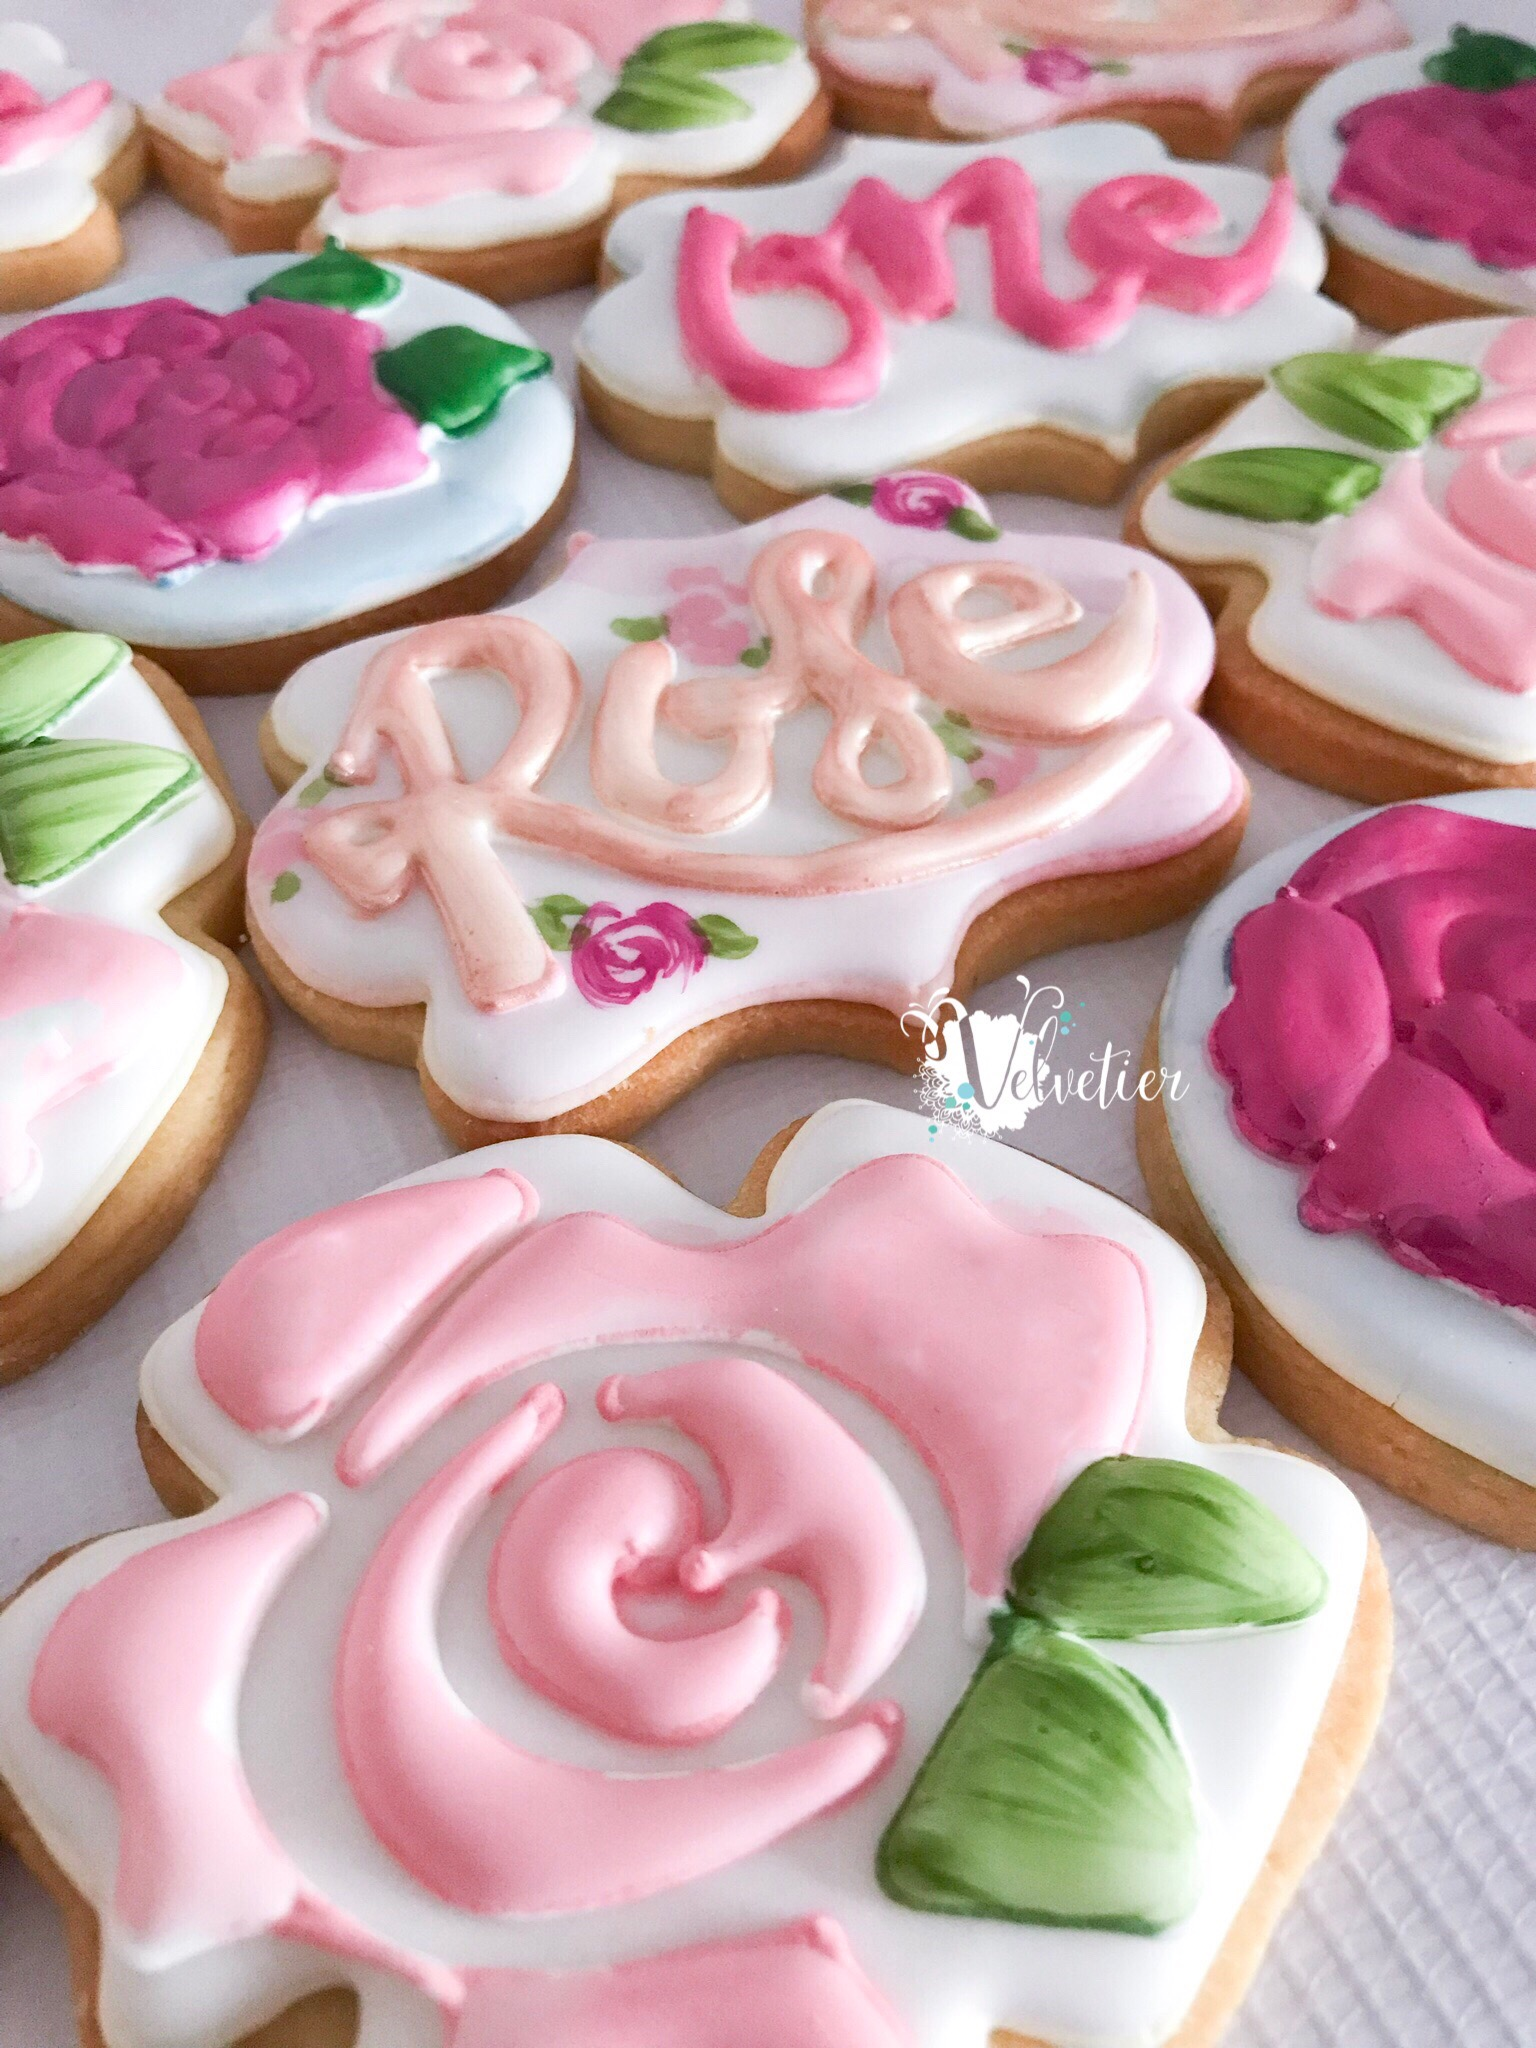 shades of pink rose first birthday cookies by velvetier brisbane 1